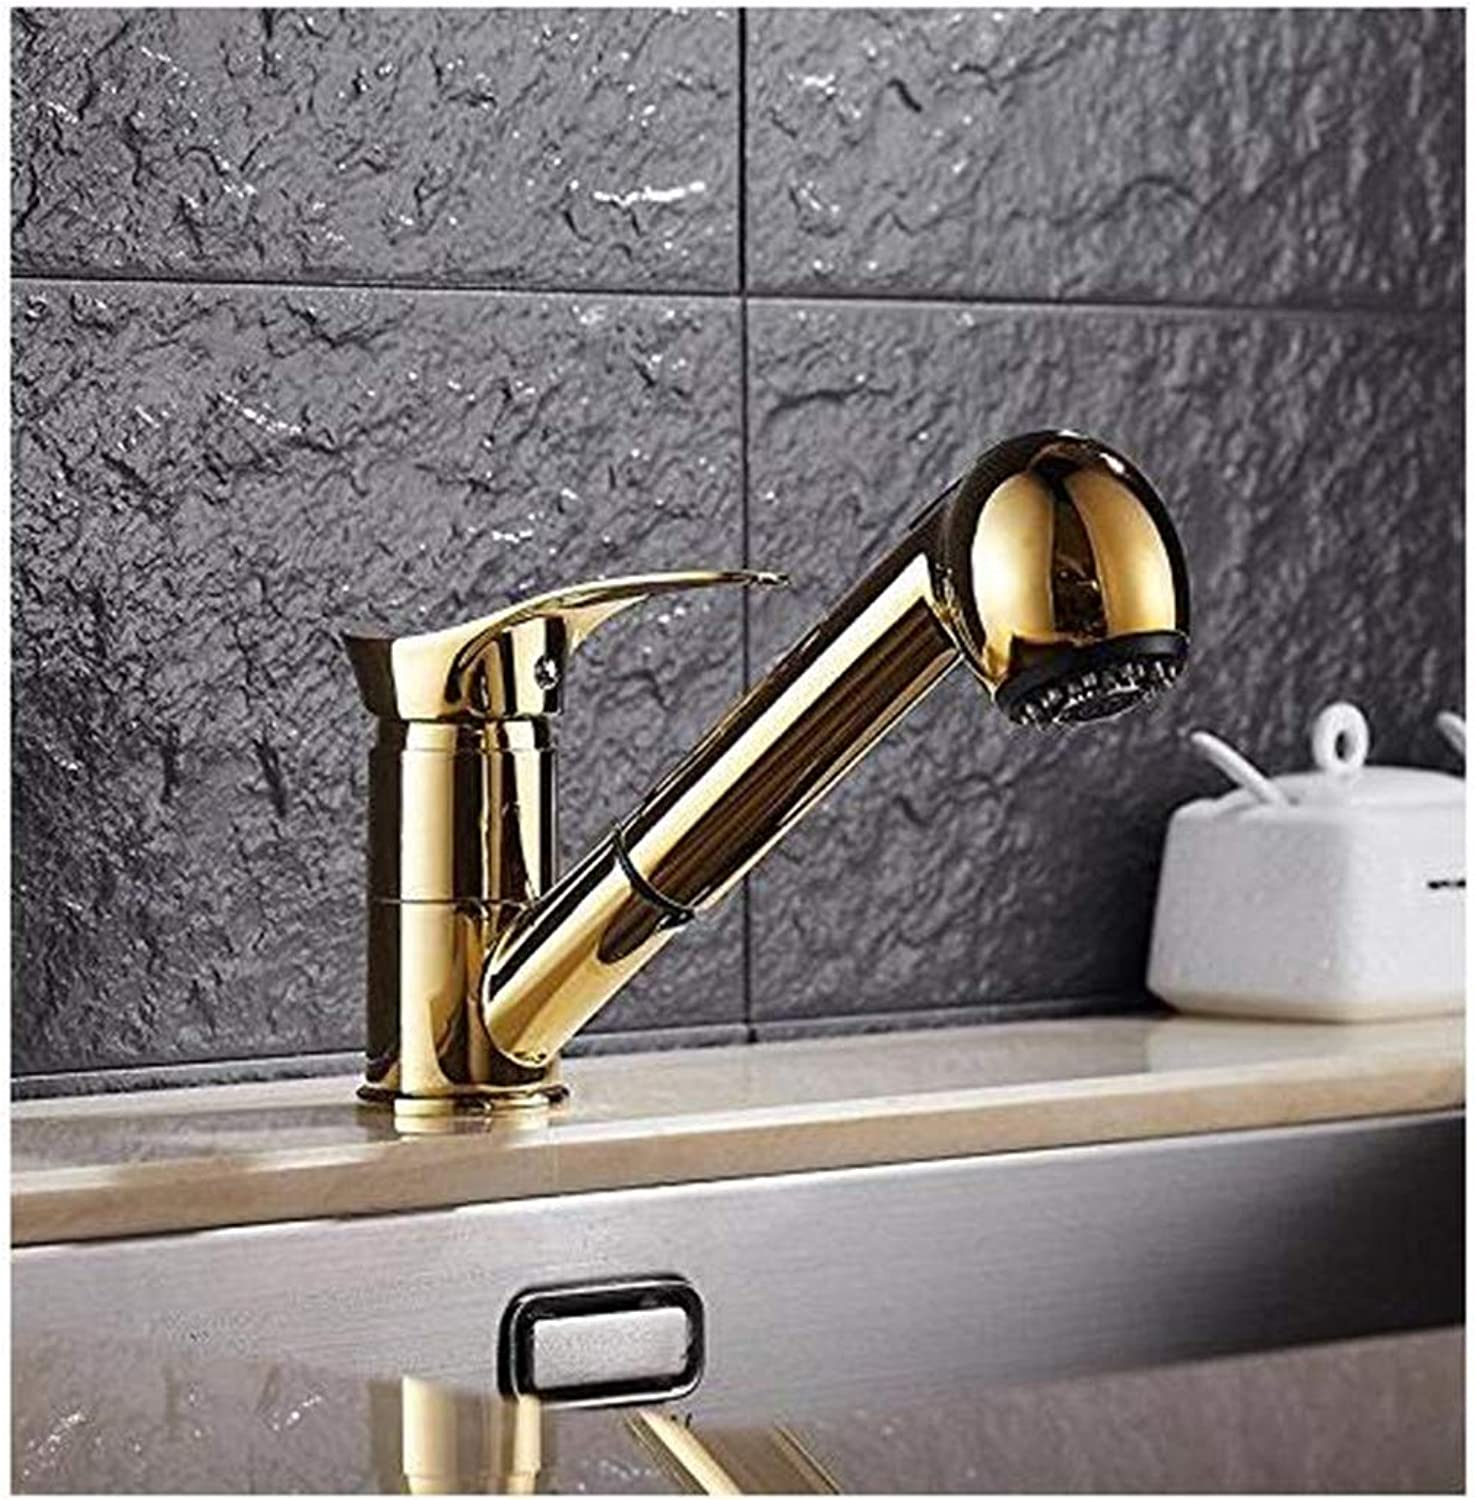 Chrome Brass Kitchen Faucet golden Pull Out Kitchen Faucet Wash Dish Washing Bowl Tap Pull redating Size Water Cold Hot Kitchen Tap